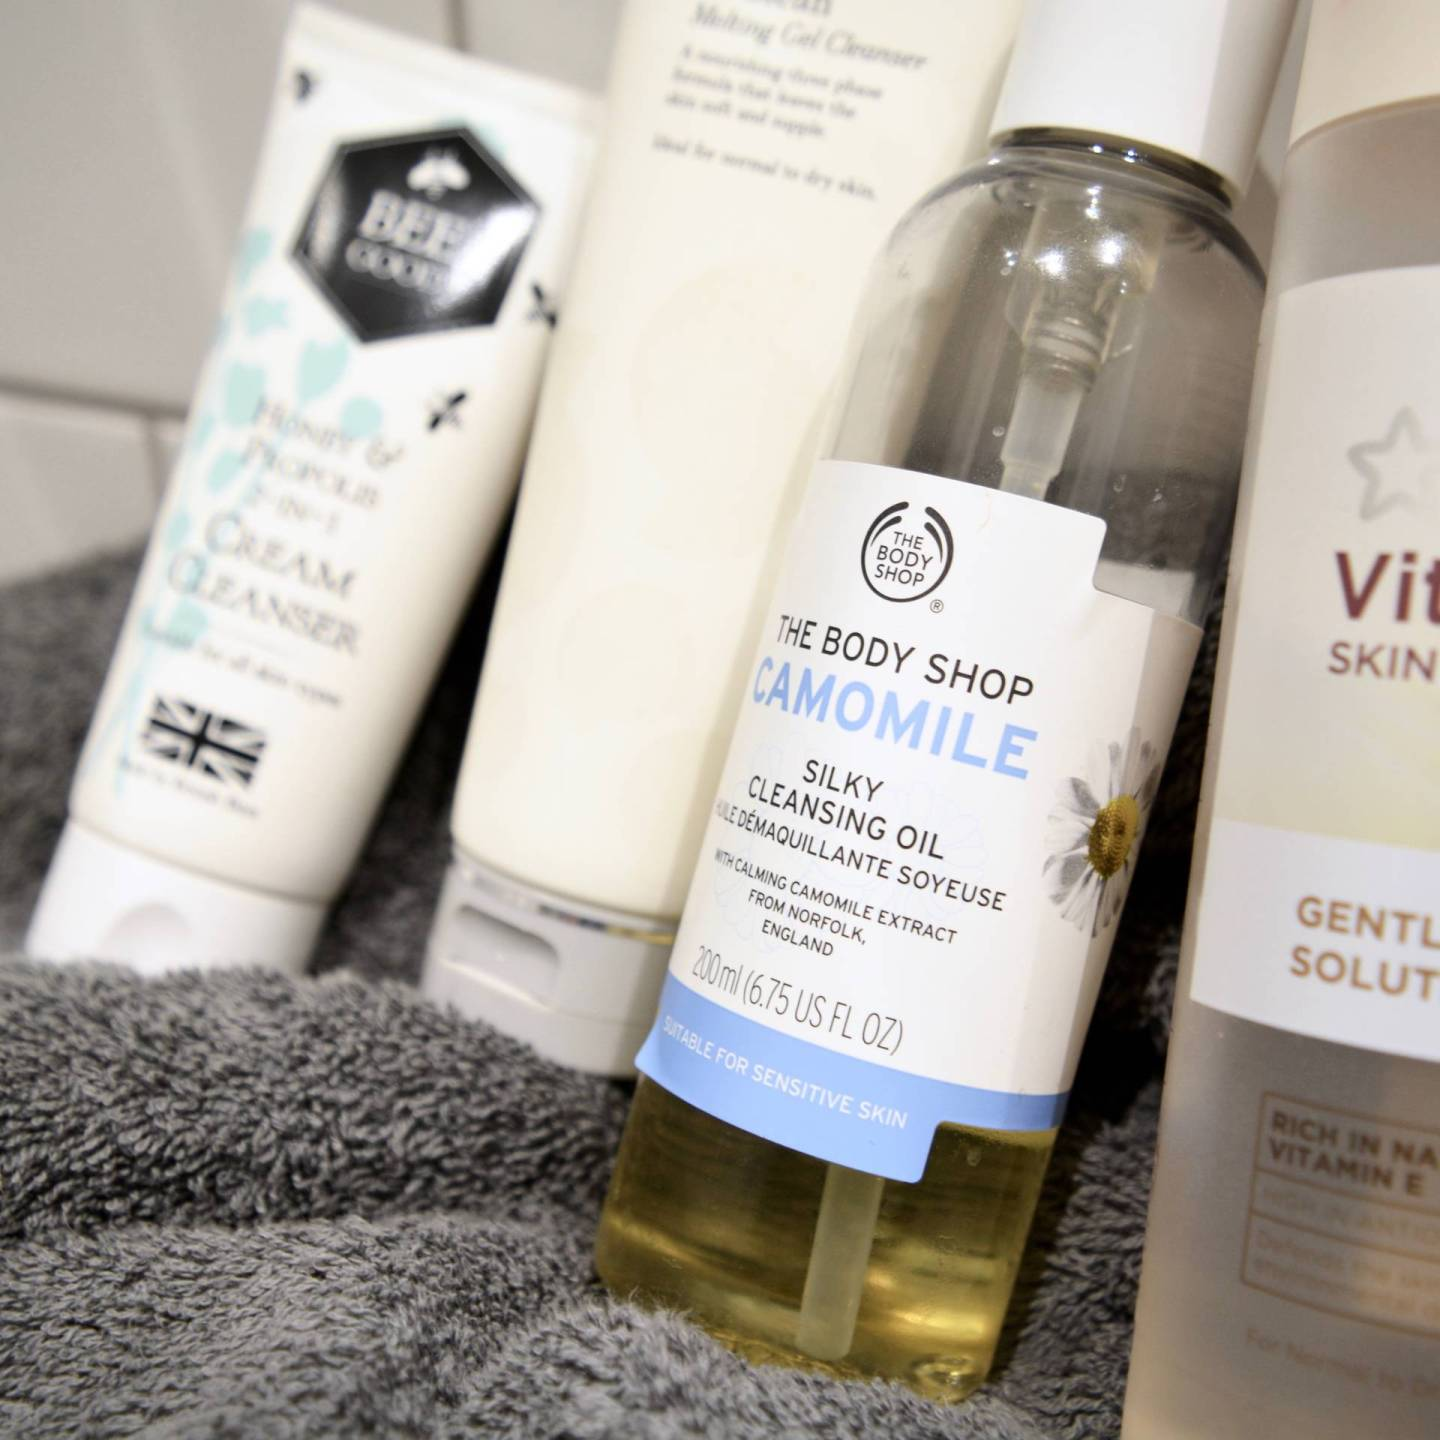 5 best budget cleansers for sensitive skin - The Body Shop Camomile Silky Cleansing Oil // Talonted Lex